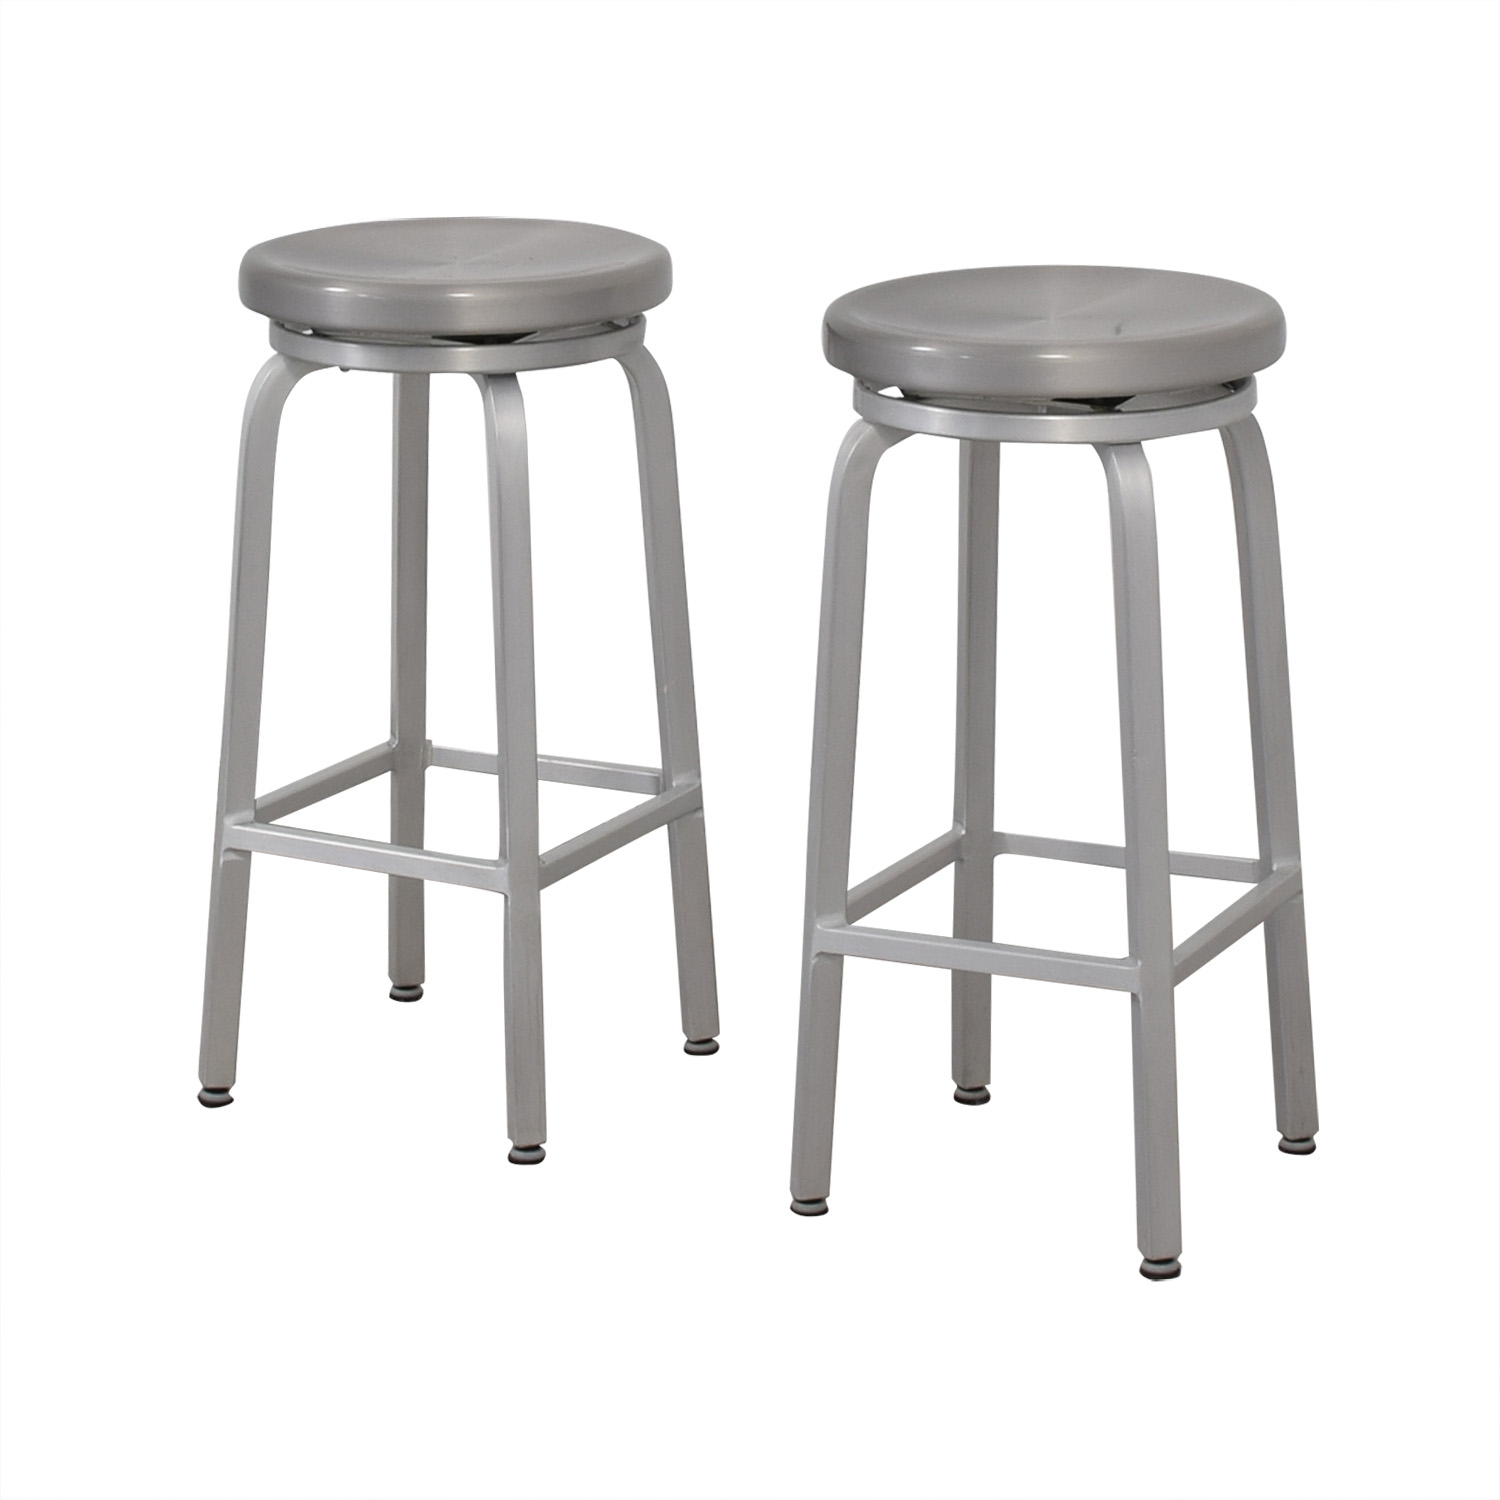 Crate & Barrel Crate & Barrel Stainless Steel Stools